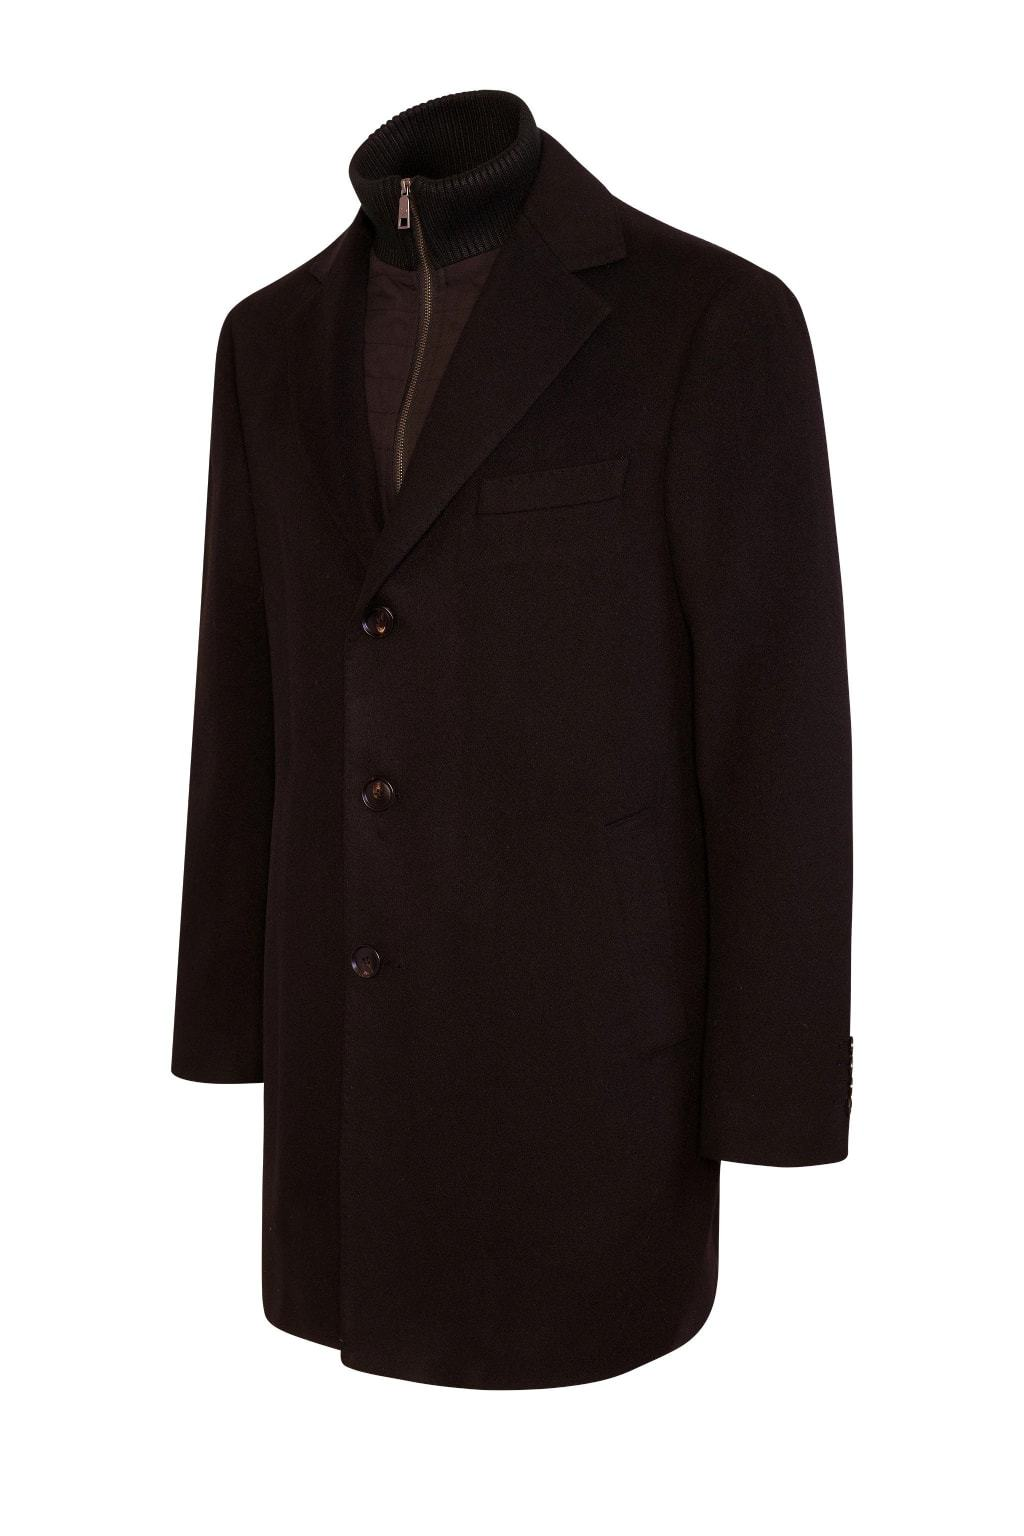 Black LeClaire Cashmere Wool Blend Overcoat - Cardinal of Canada-US